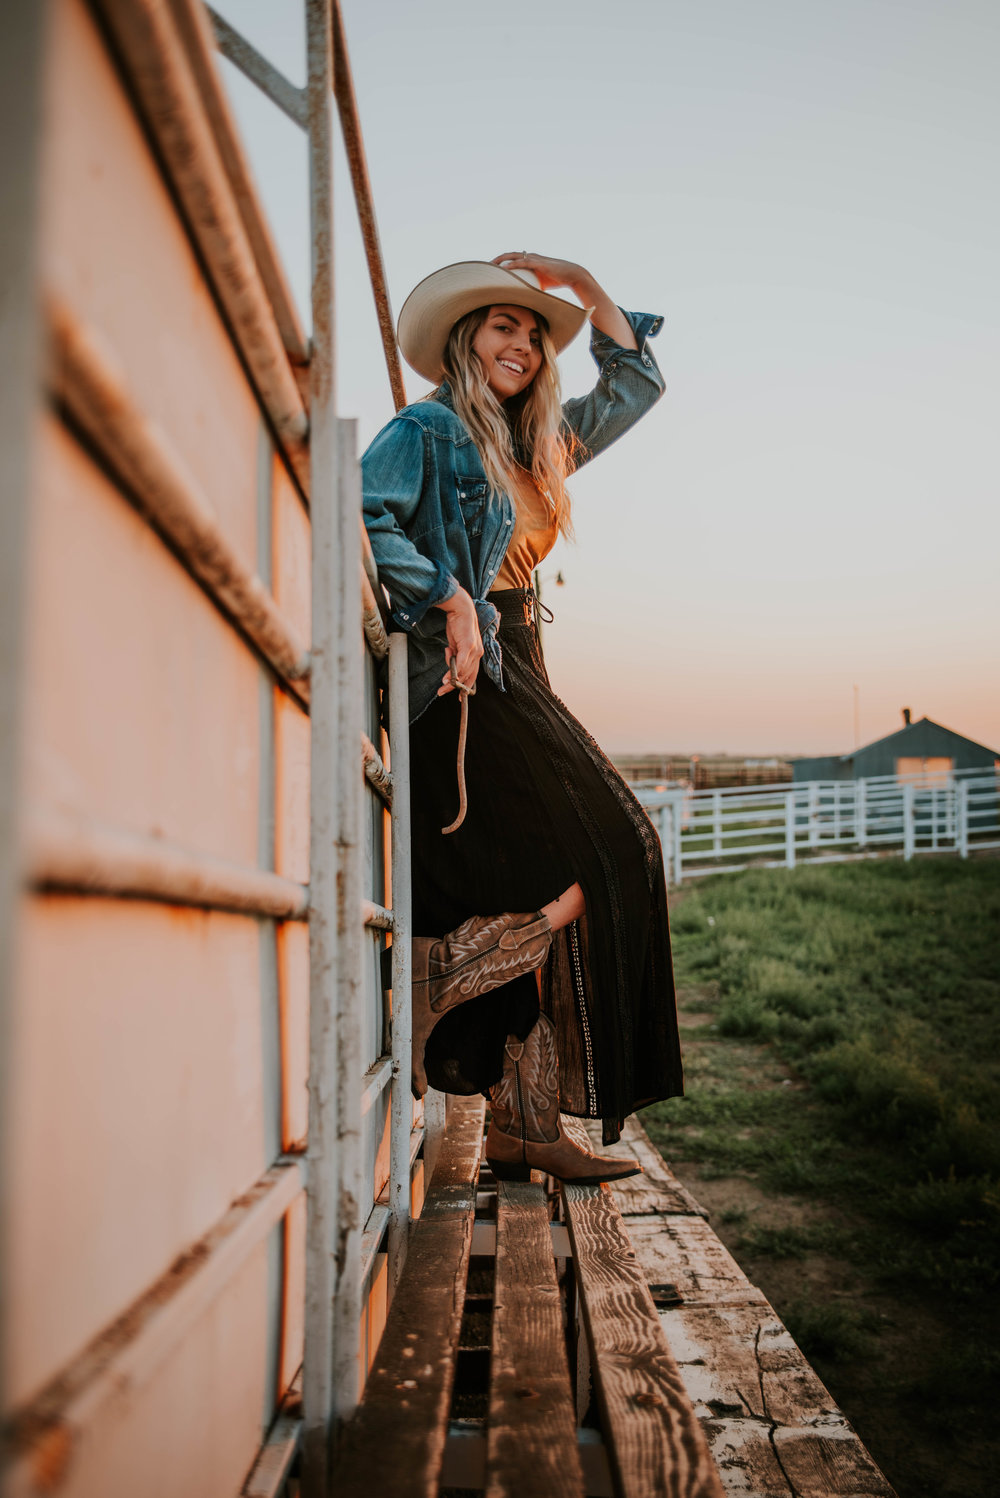 Miss. Miller's Photography | Colorado | Western Photo shoot | Western Fashion | Wrangler | Wrangler jacket | Black western skirt | black skirt | Boots and skirts | Boot fashion | Western Boot Fashion | Cowgirl Fashion | Durango Boots | Brown Durango Boots | Durango Dream Catchers